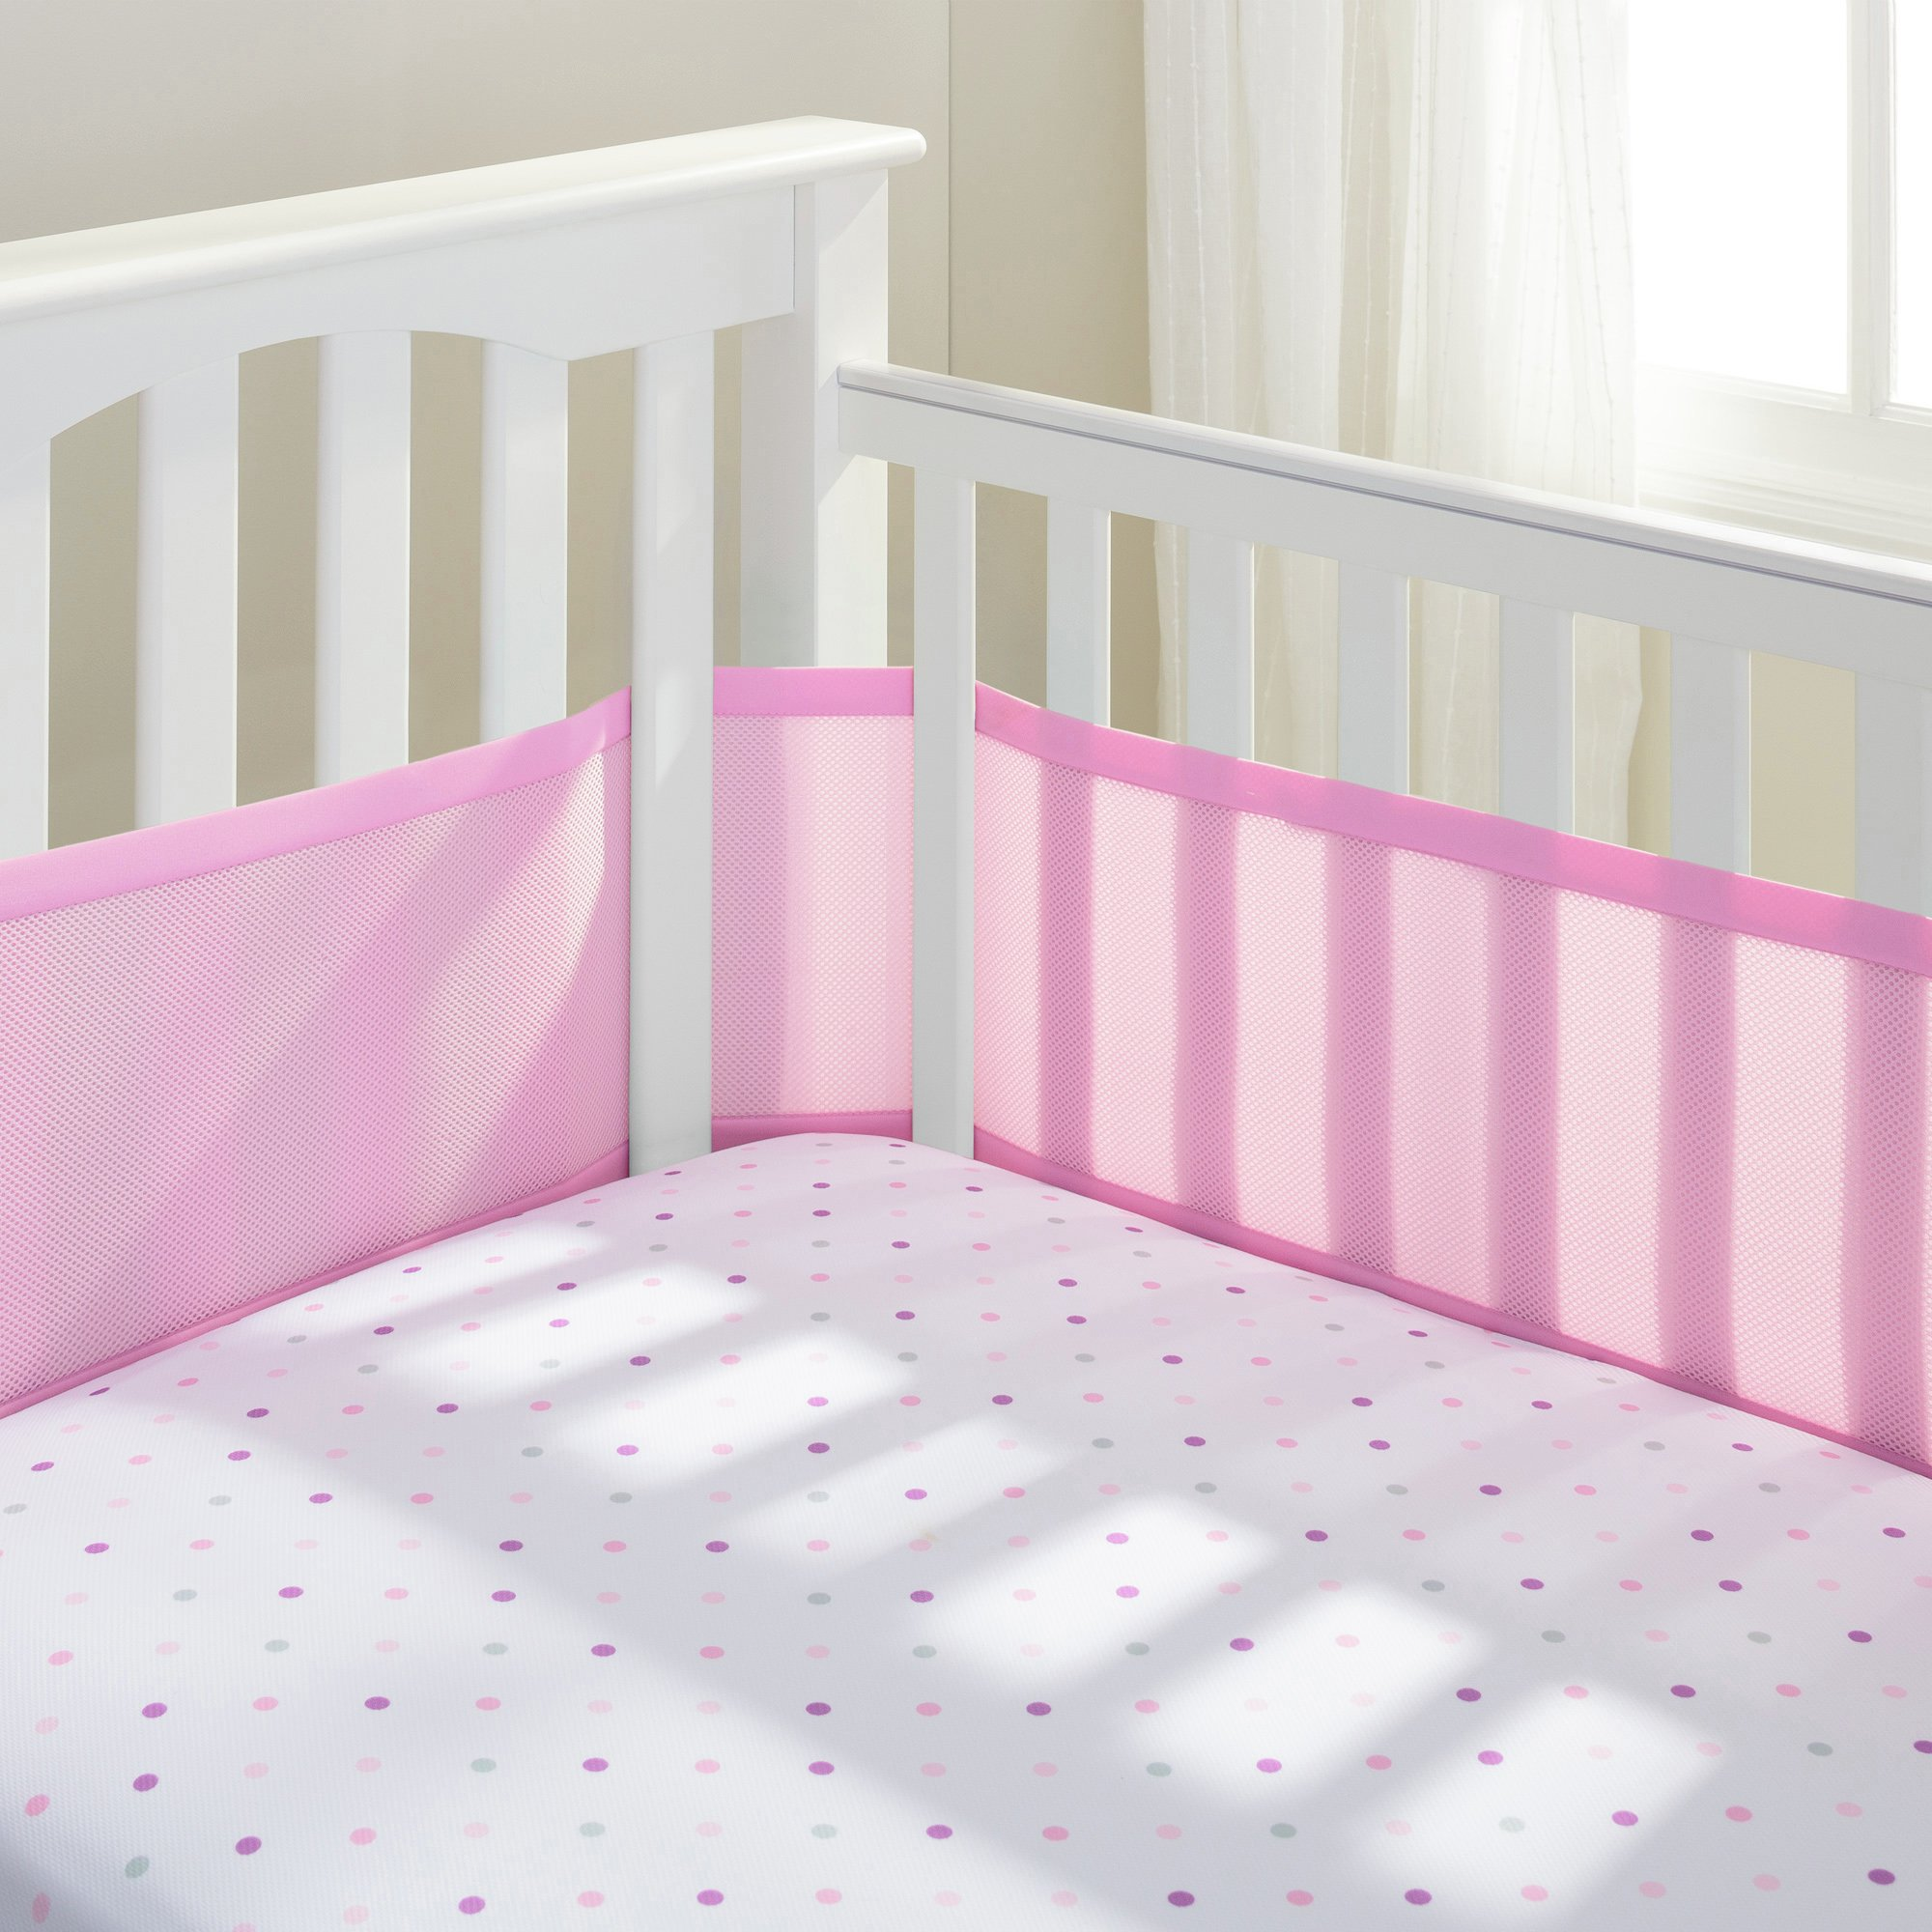 Image of BreathableBaby - 4 Sided - Cot Liner - Pink Mist